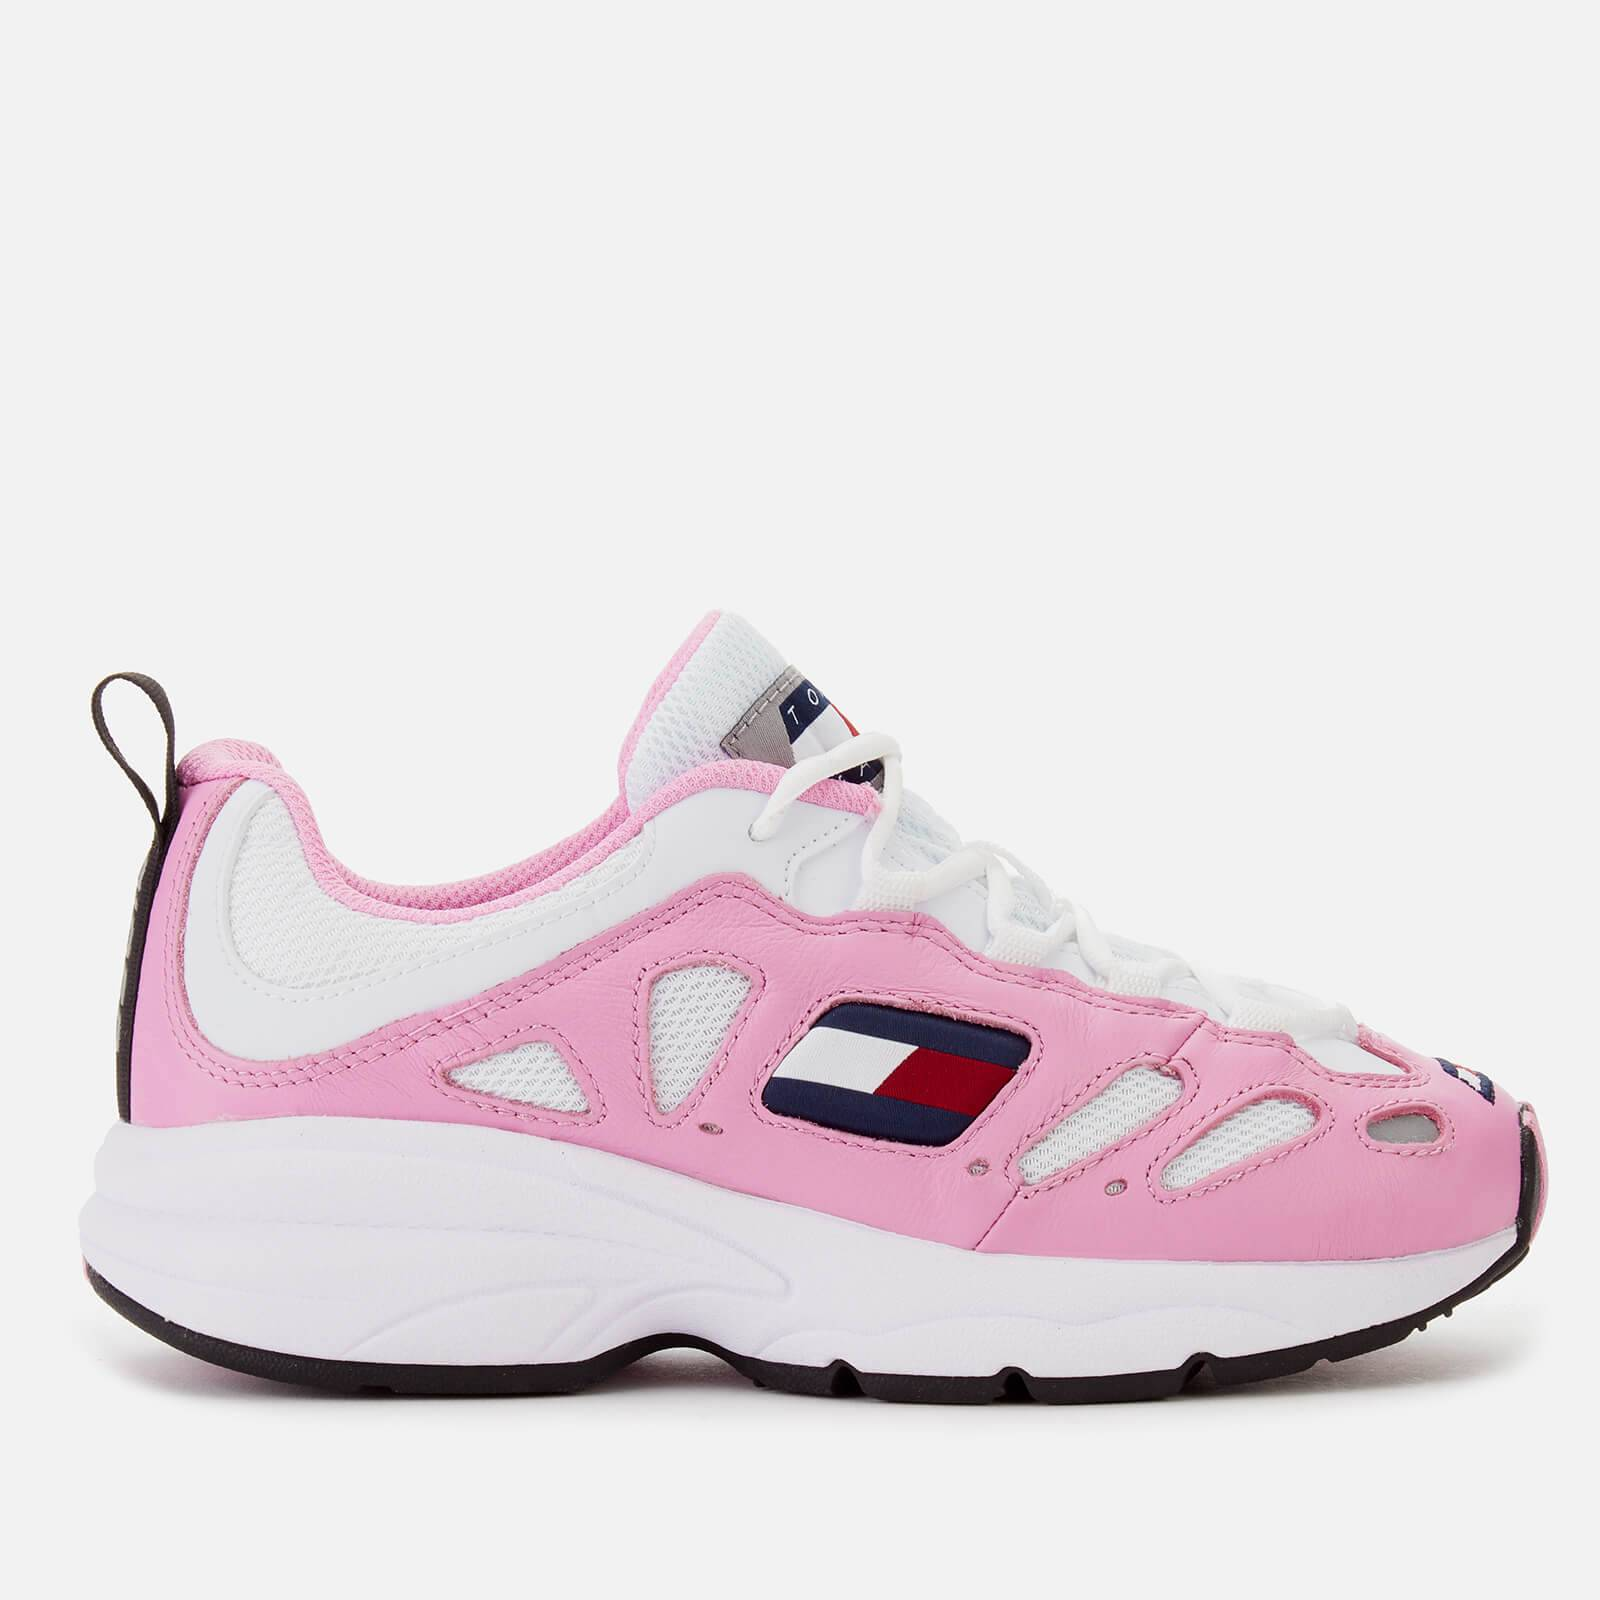 Tommy Jeans Women's Retro Chunky Runner Style Trainers - Pink Mist/White - EU 38/UK 5 - Pink